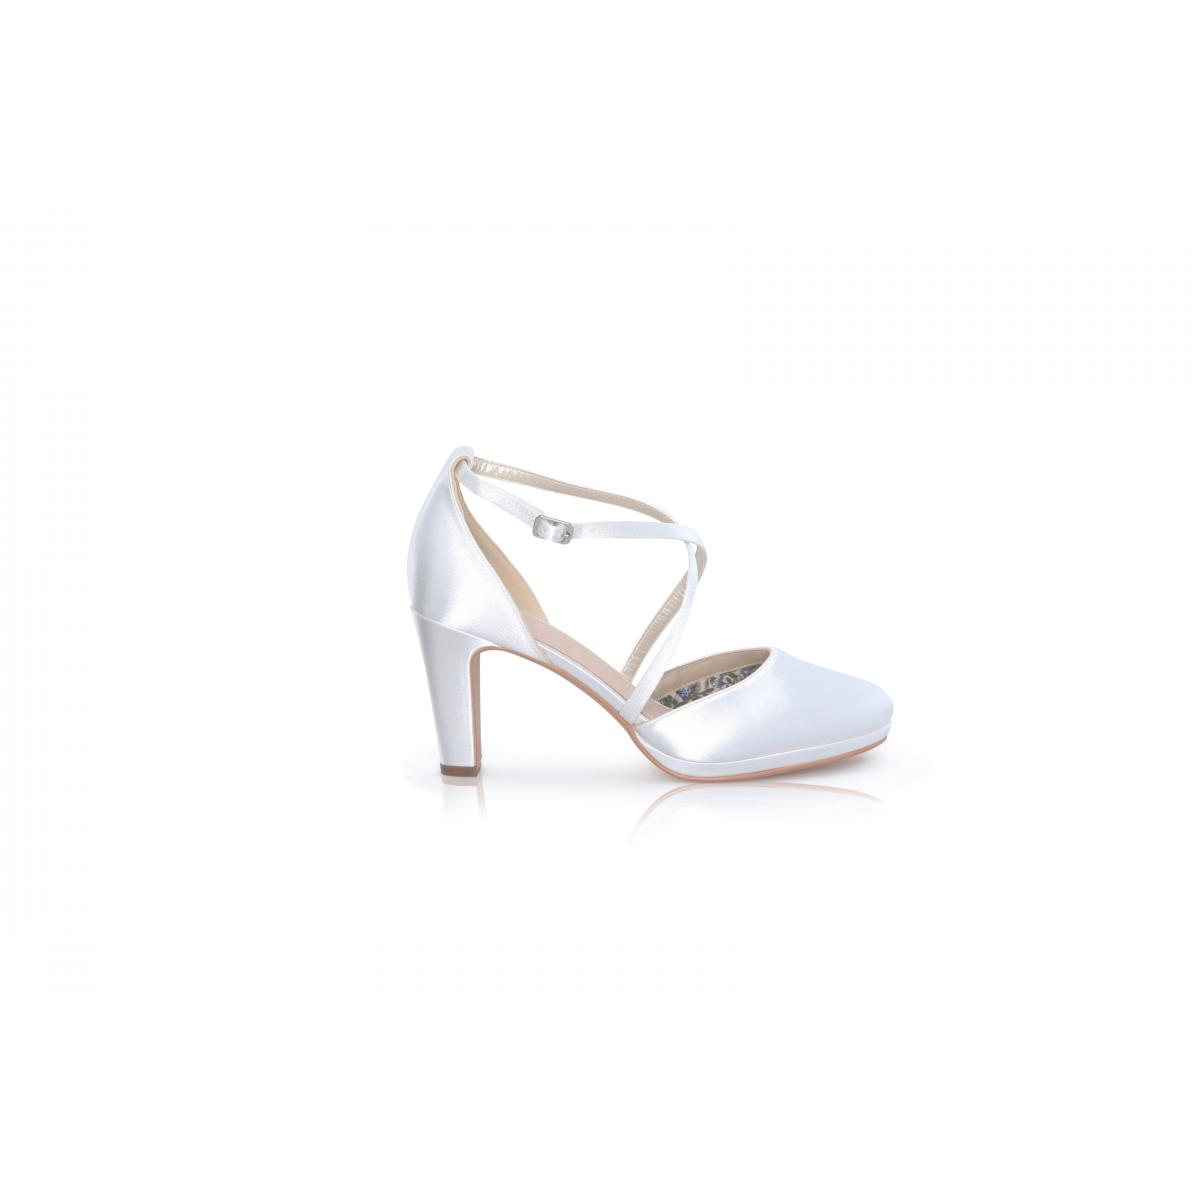 Perfect Bridal Wren Shoes - Ivory Satin 1